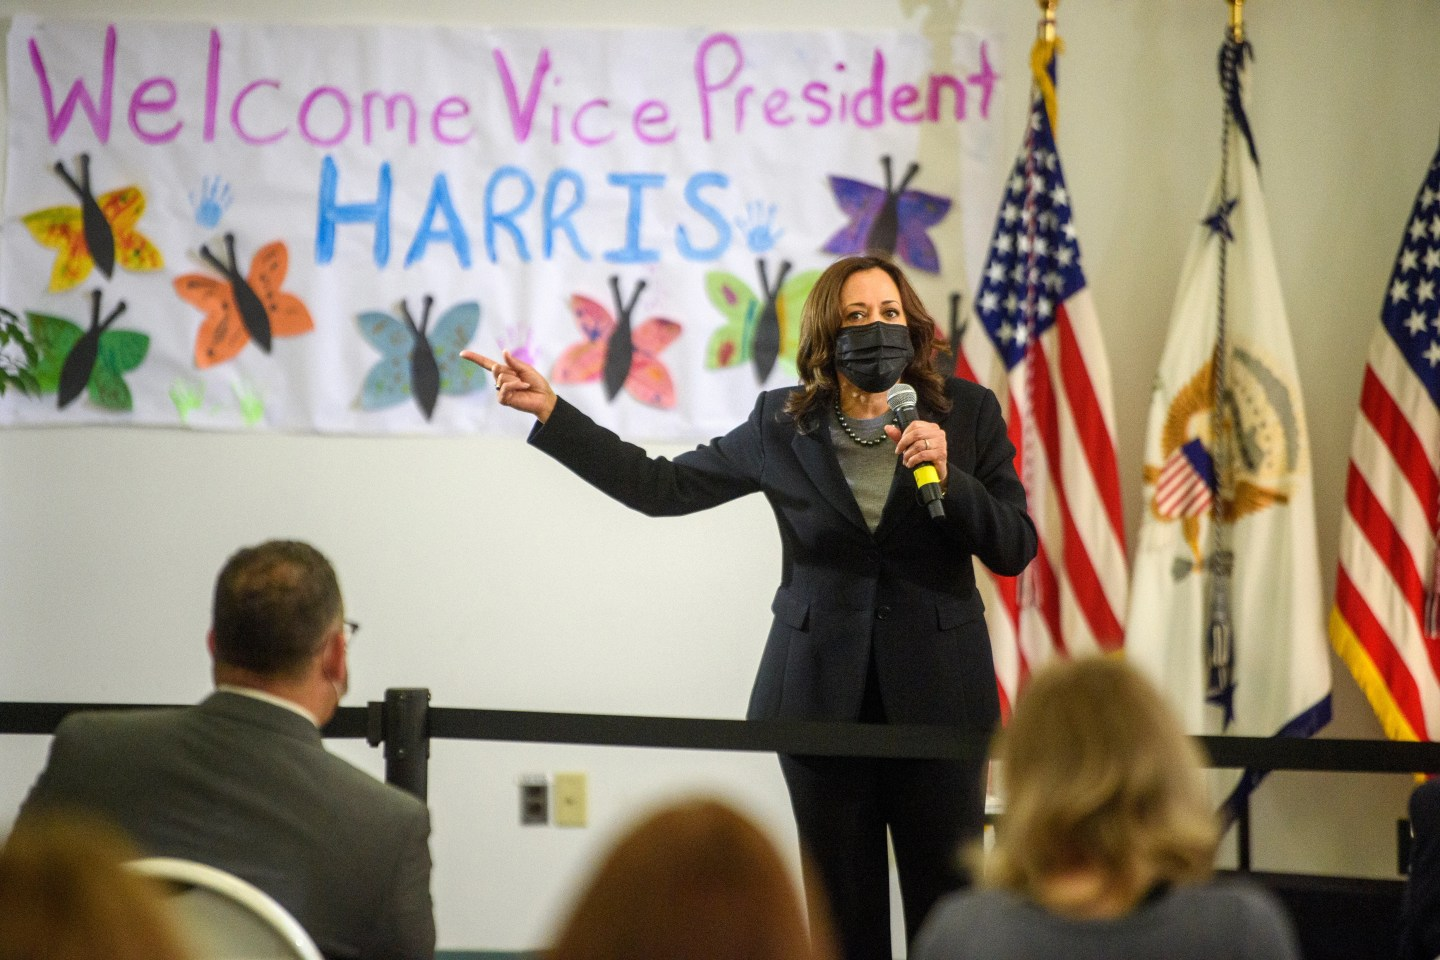 Vice President Kamala Harris on March 26, 2021, in New Haven, Connecticut.